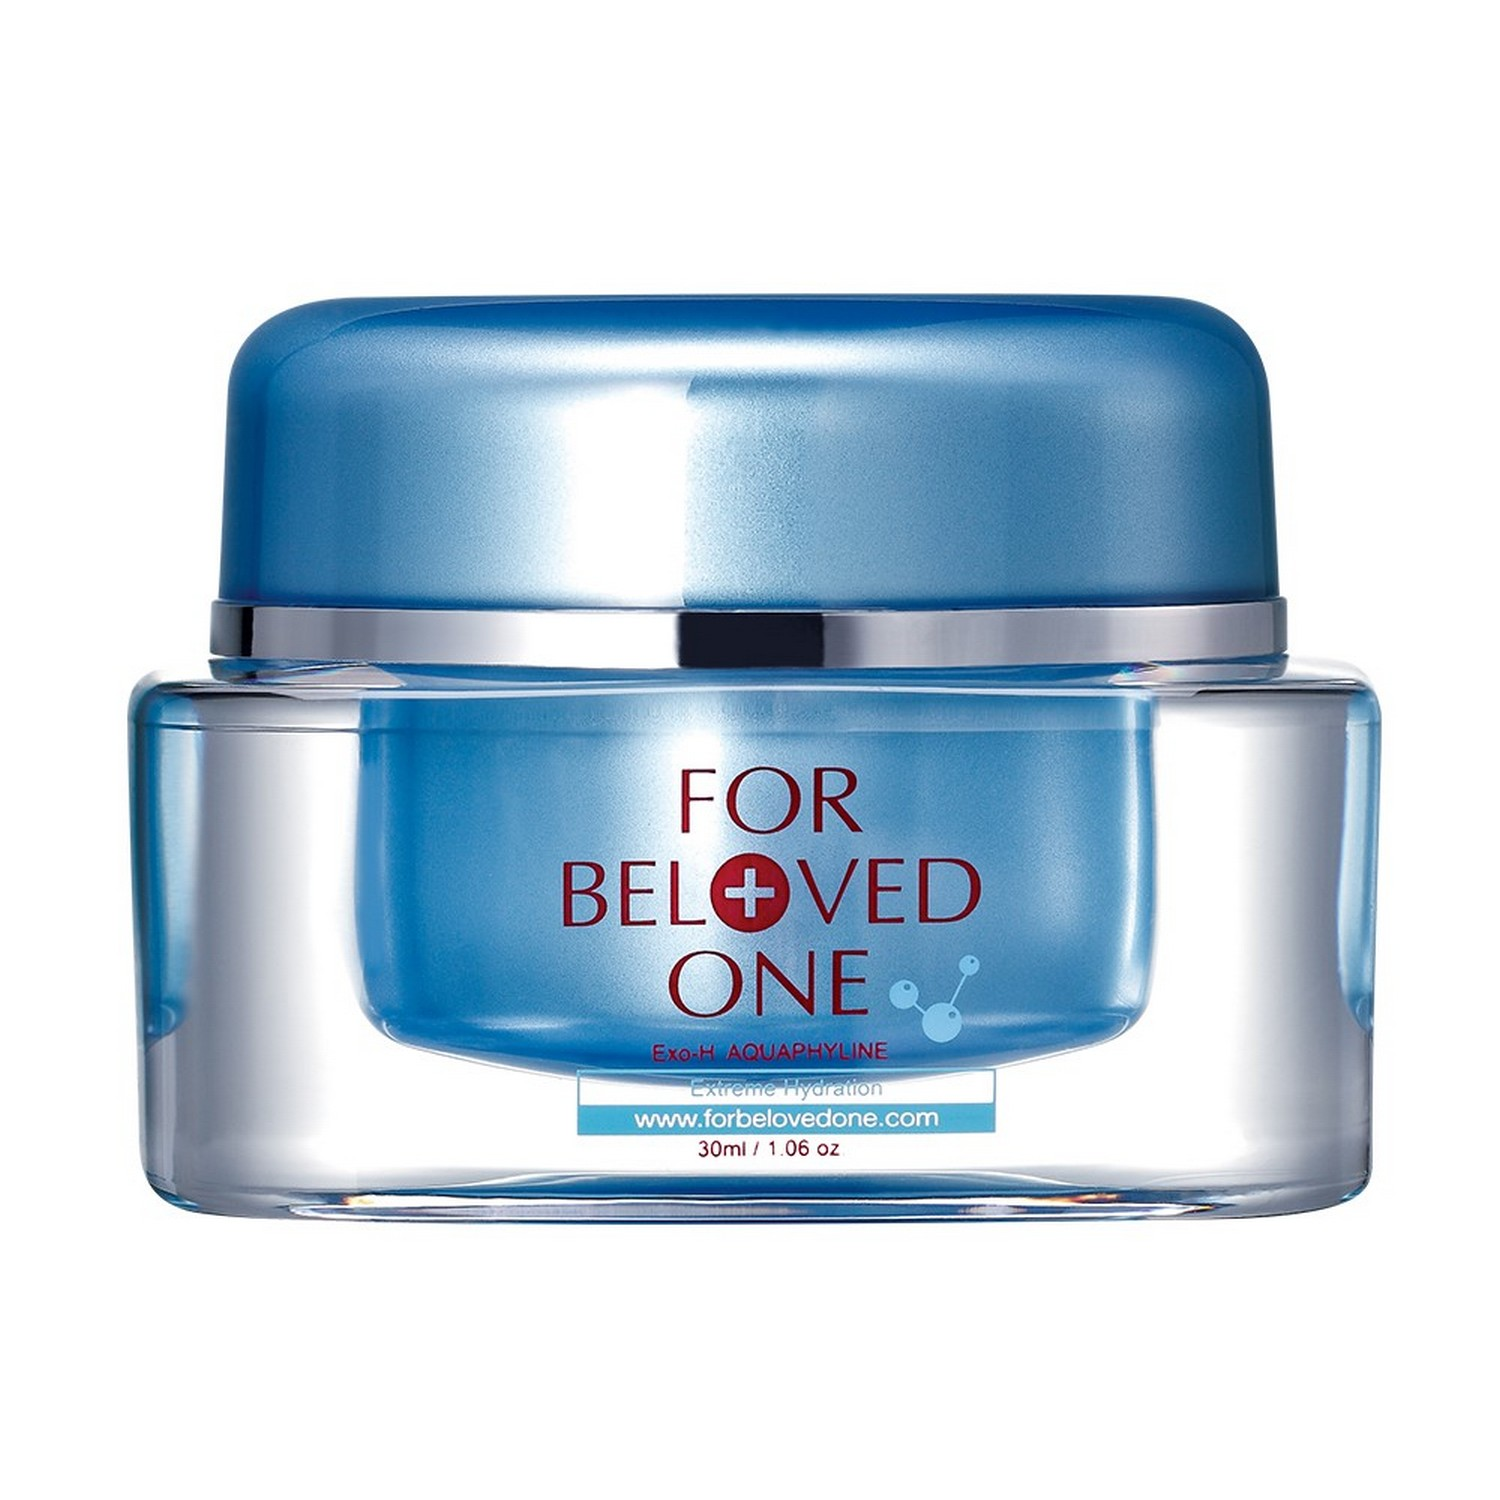 For Beloved One Hyaluronic Acid Tri-Molecules Moisturizing Surge Cream (1.06 oz / 30 ml)